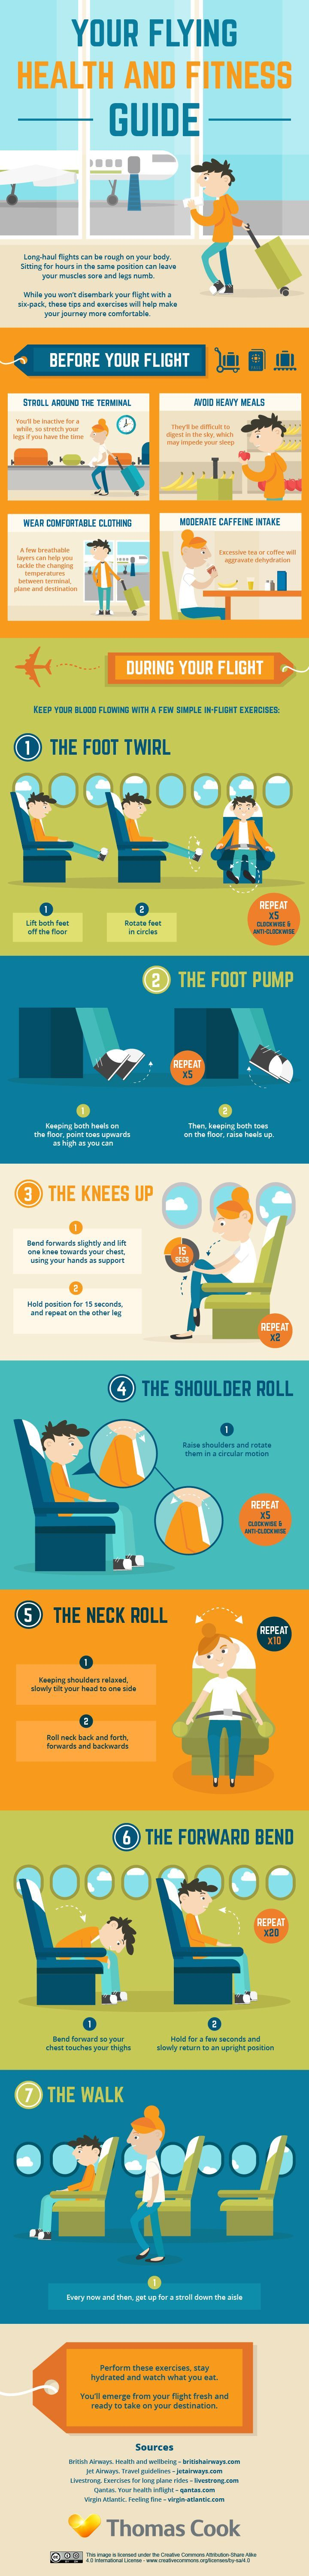 Your Flying Health & Fitness Guide [Infographic]